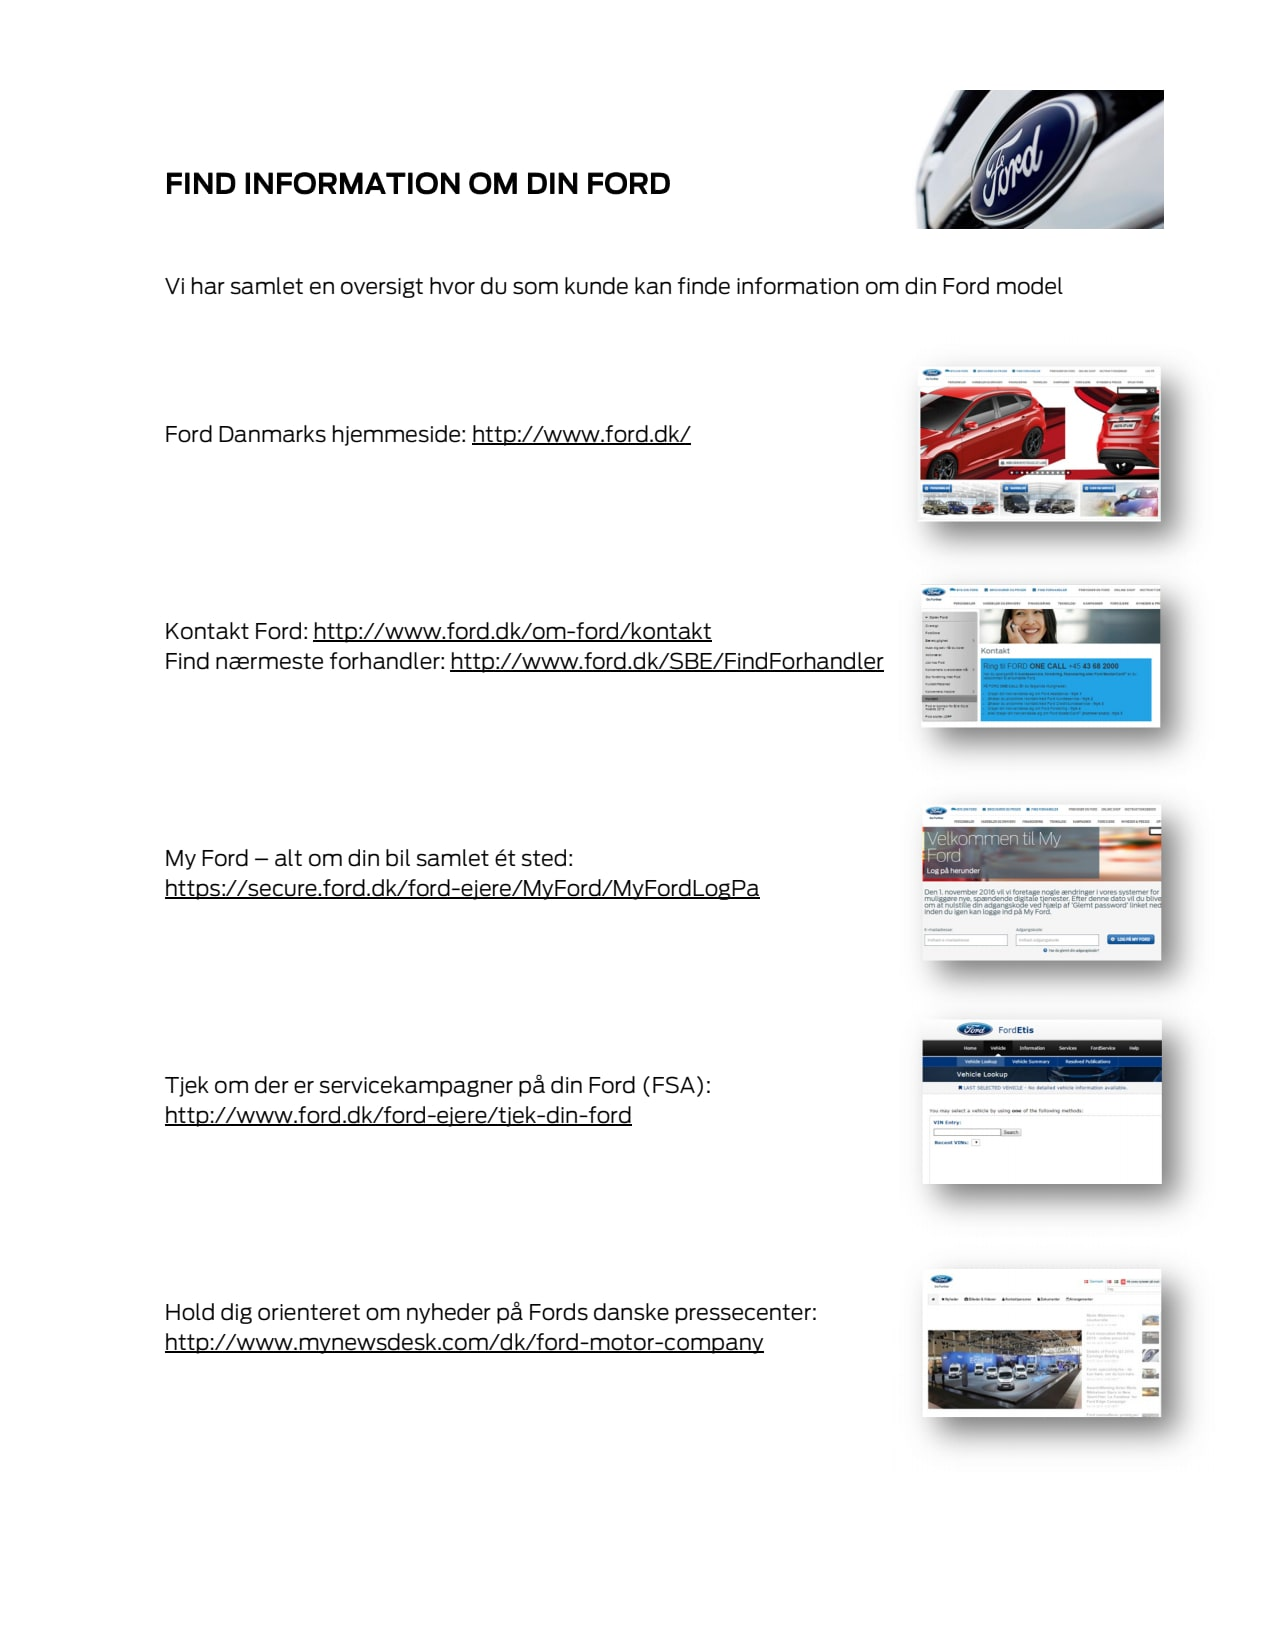 Find information om din ford ford motor company for Ford motor company 10k report